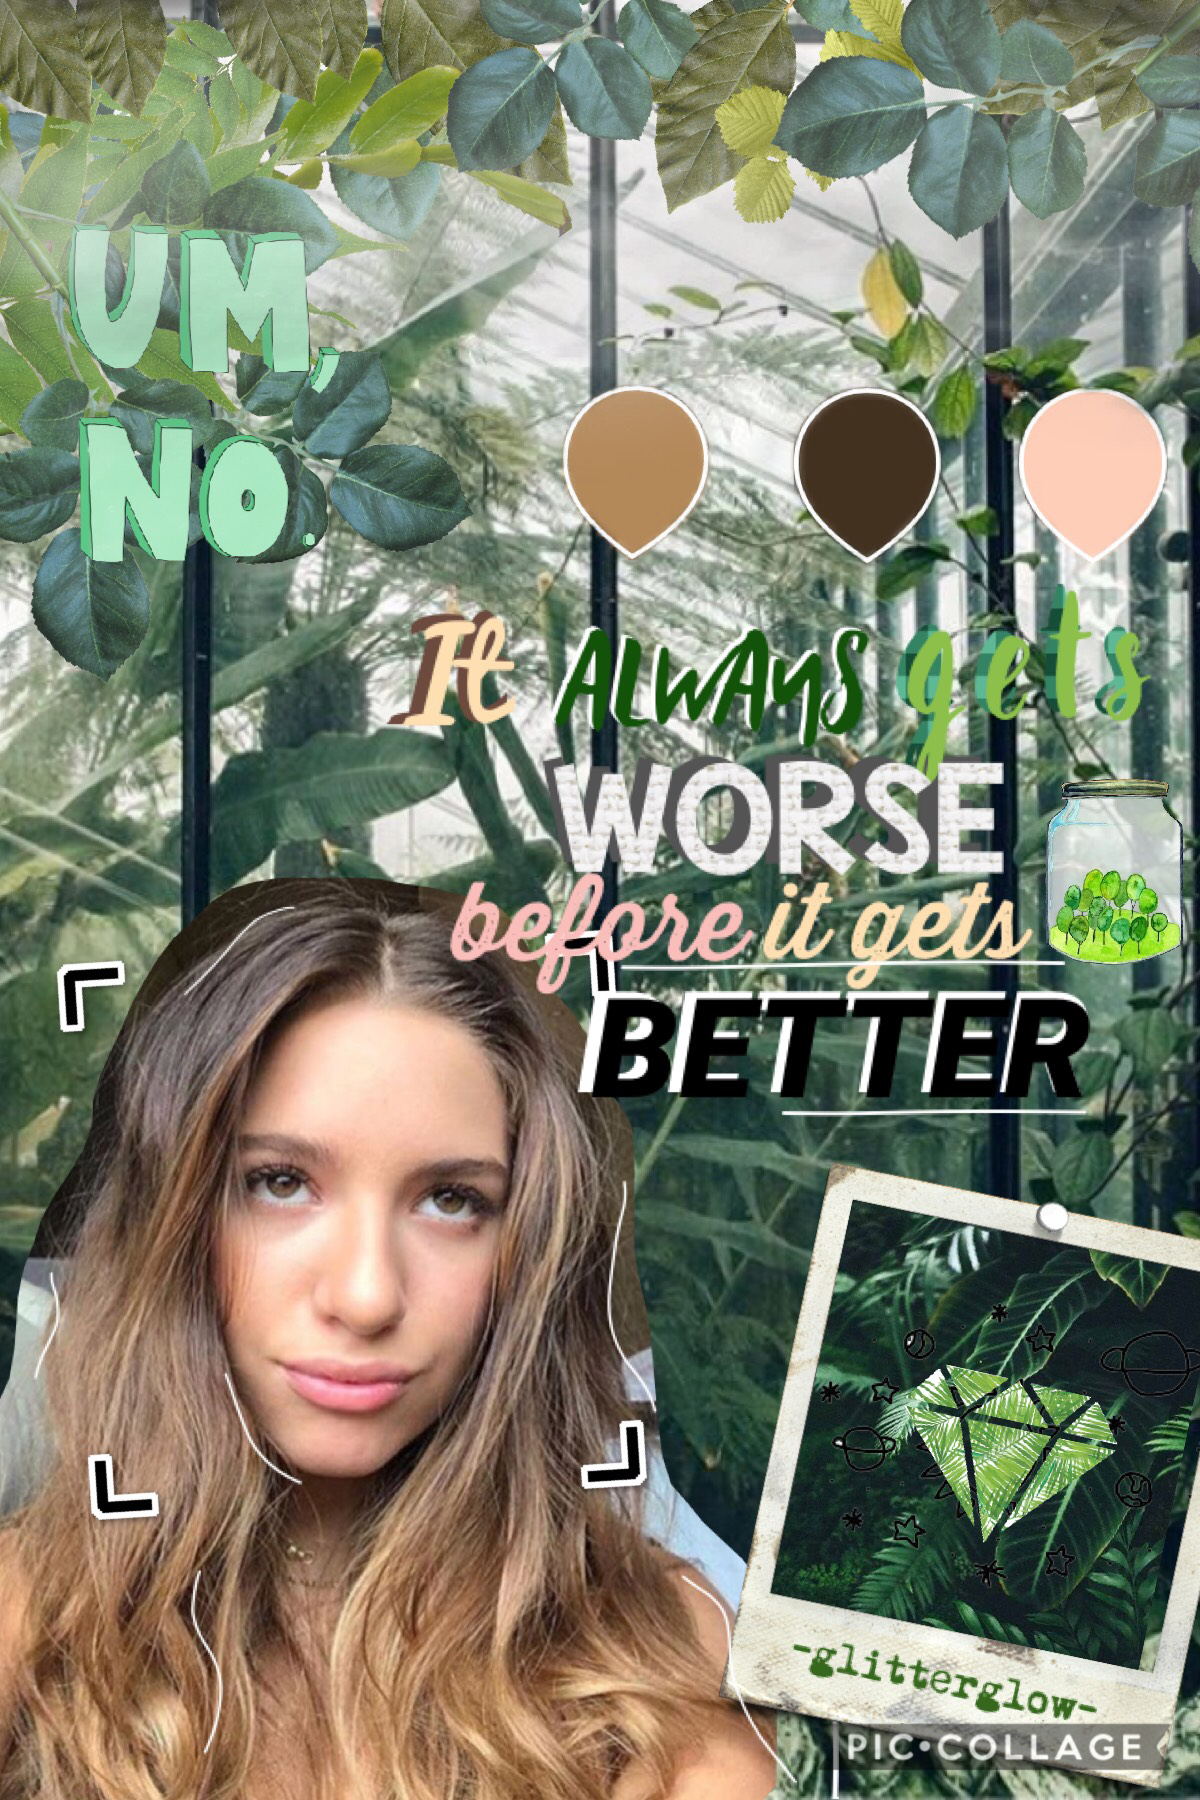 🌿tap!🌿 this collage took quite a while, but I'm happy with the end result! hope u guys like this! 💚